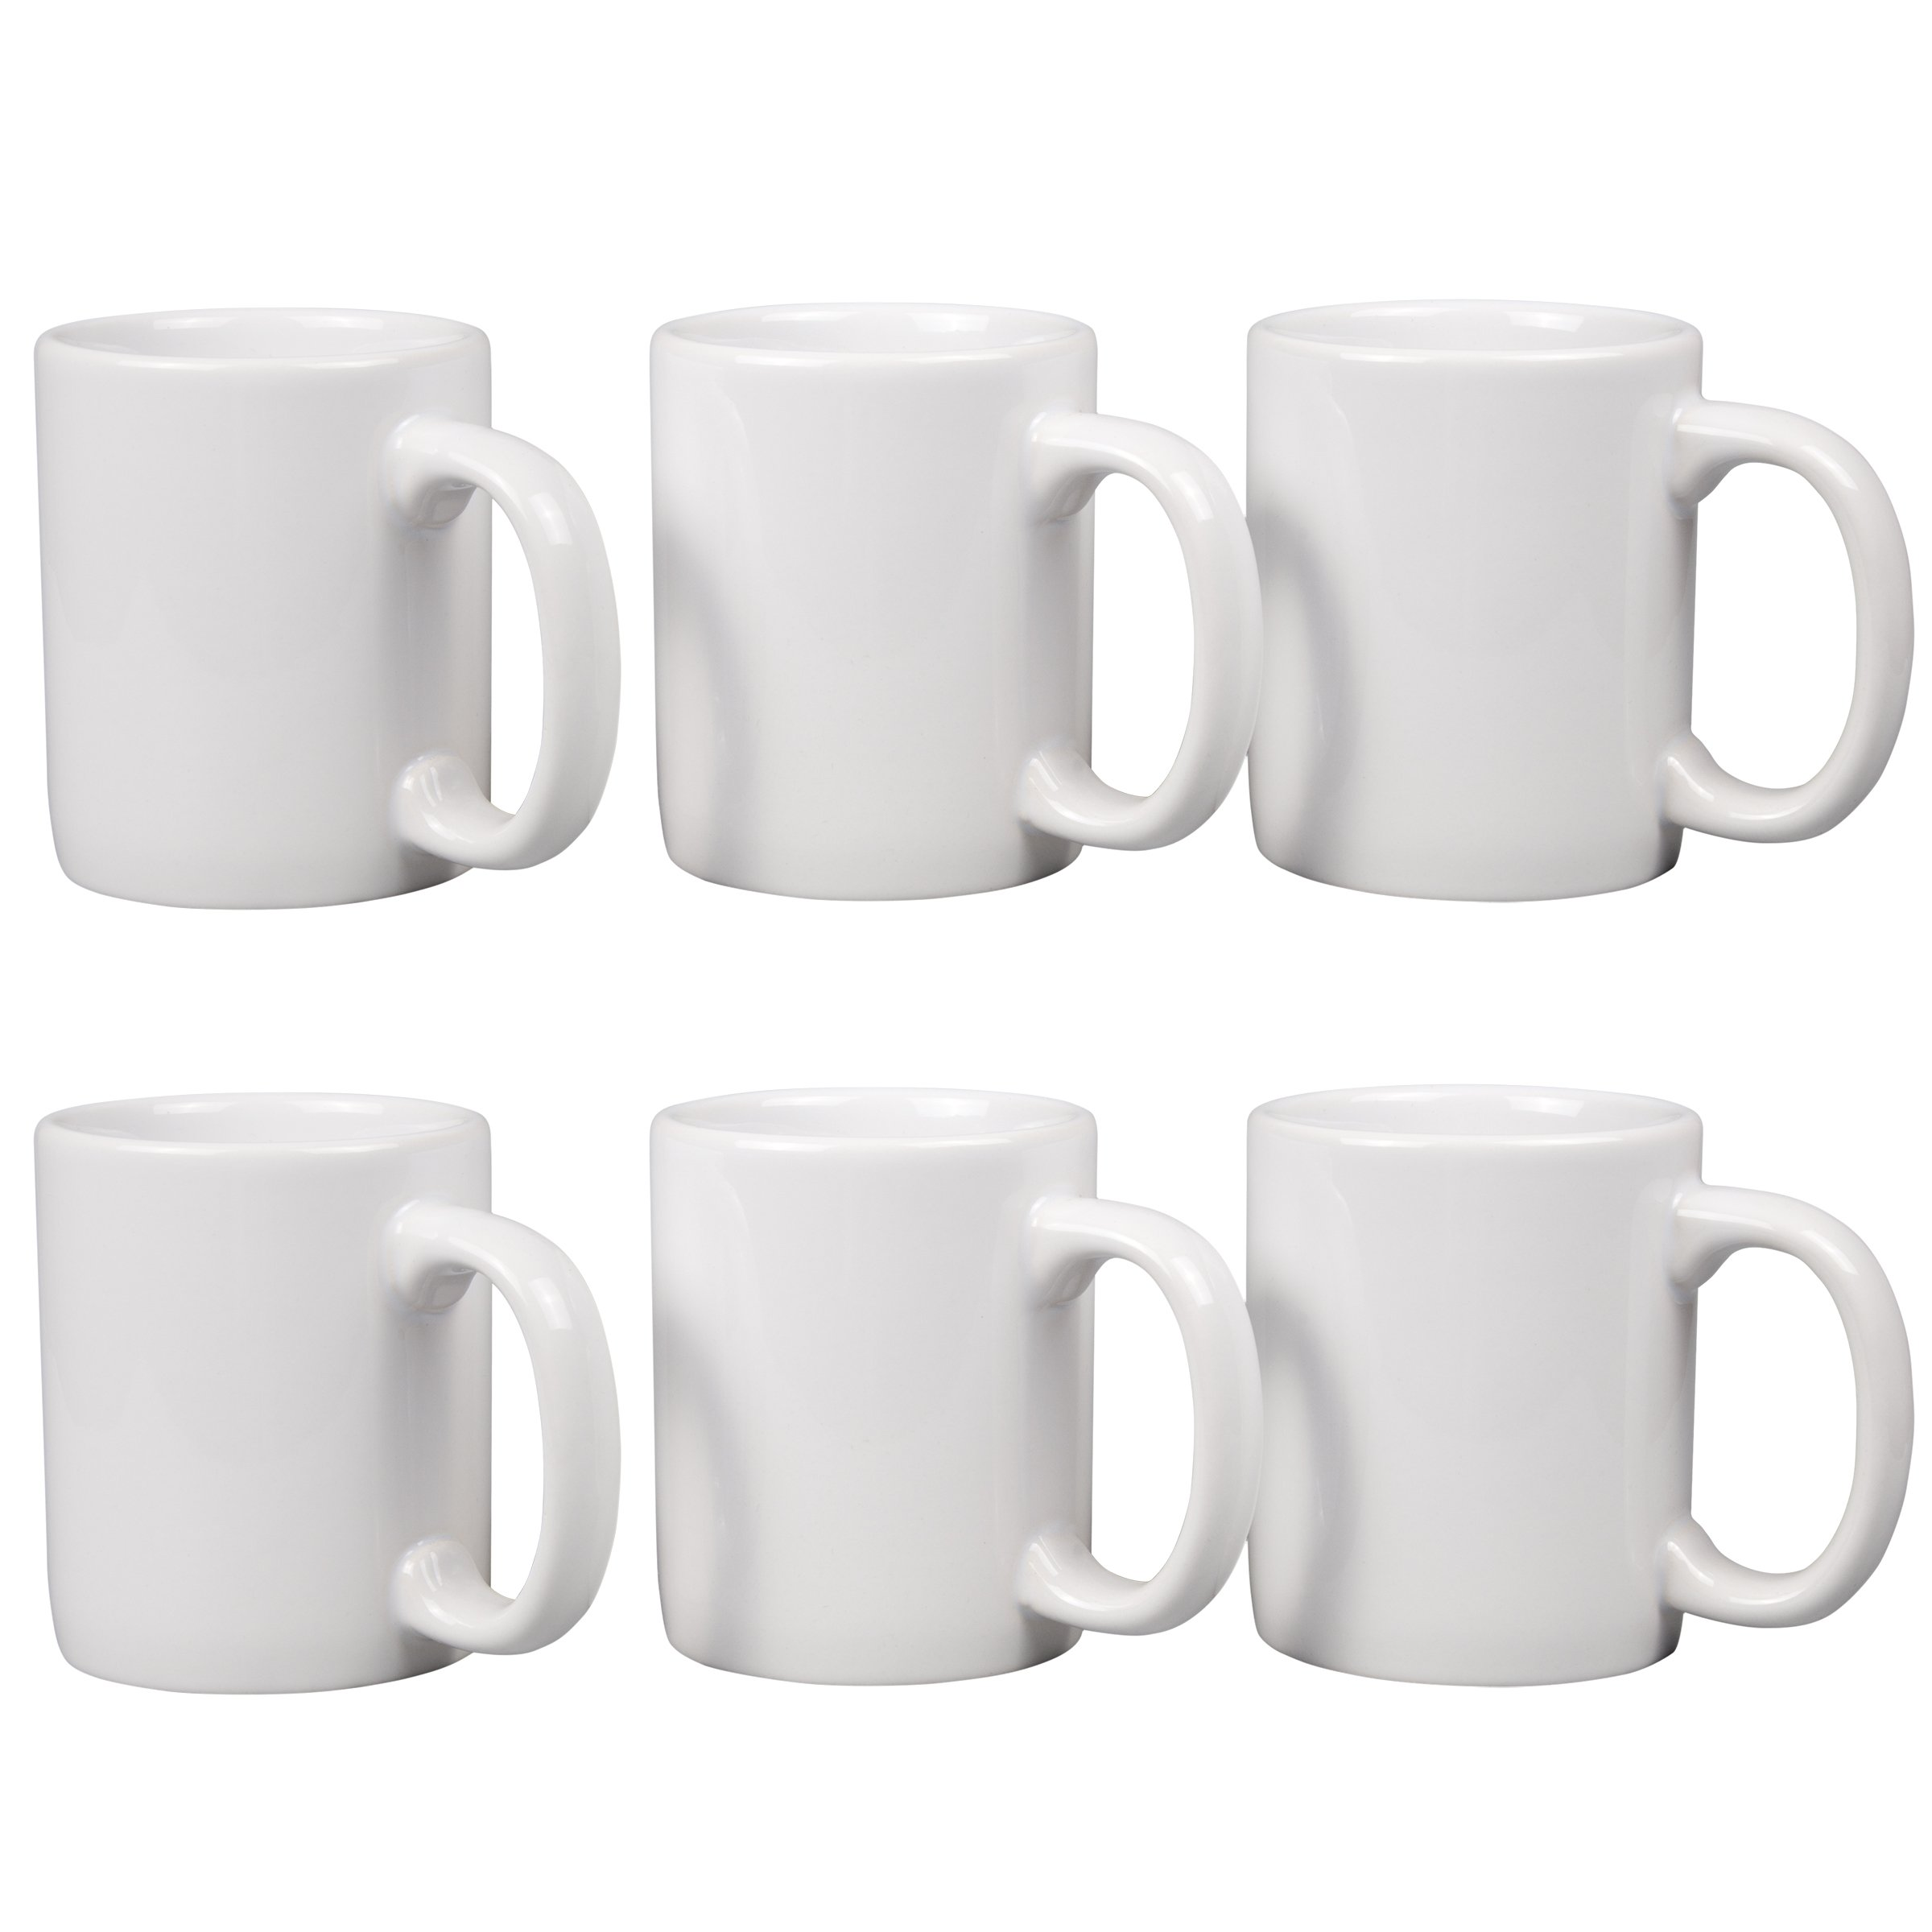 Creative Home 85355 Set of 6 Piece, 12 Oz Ceramic Coffee Mug Tea Cup, 3-1/4'' D x 4'' H, White by Creative Home (Image #1)